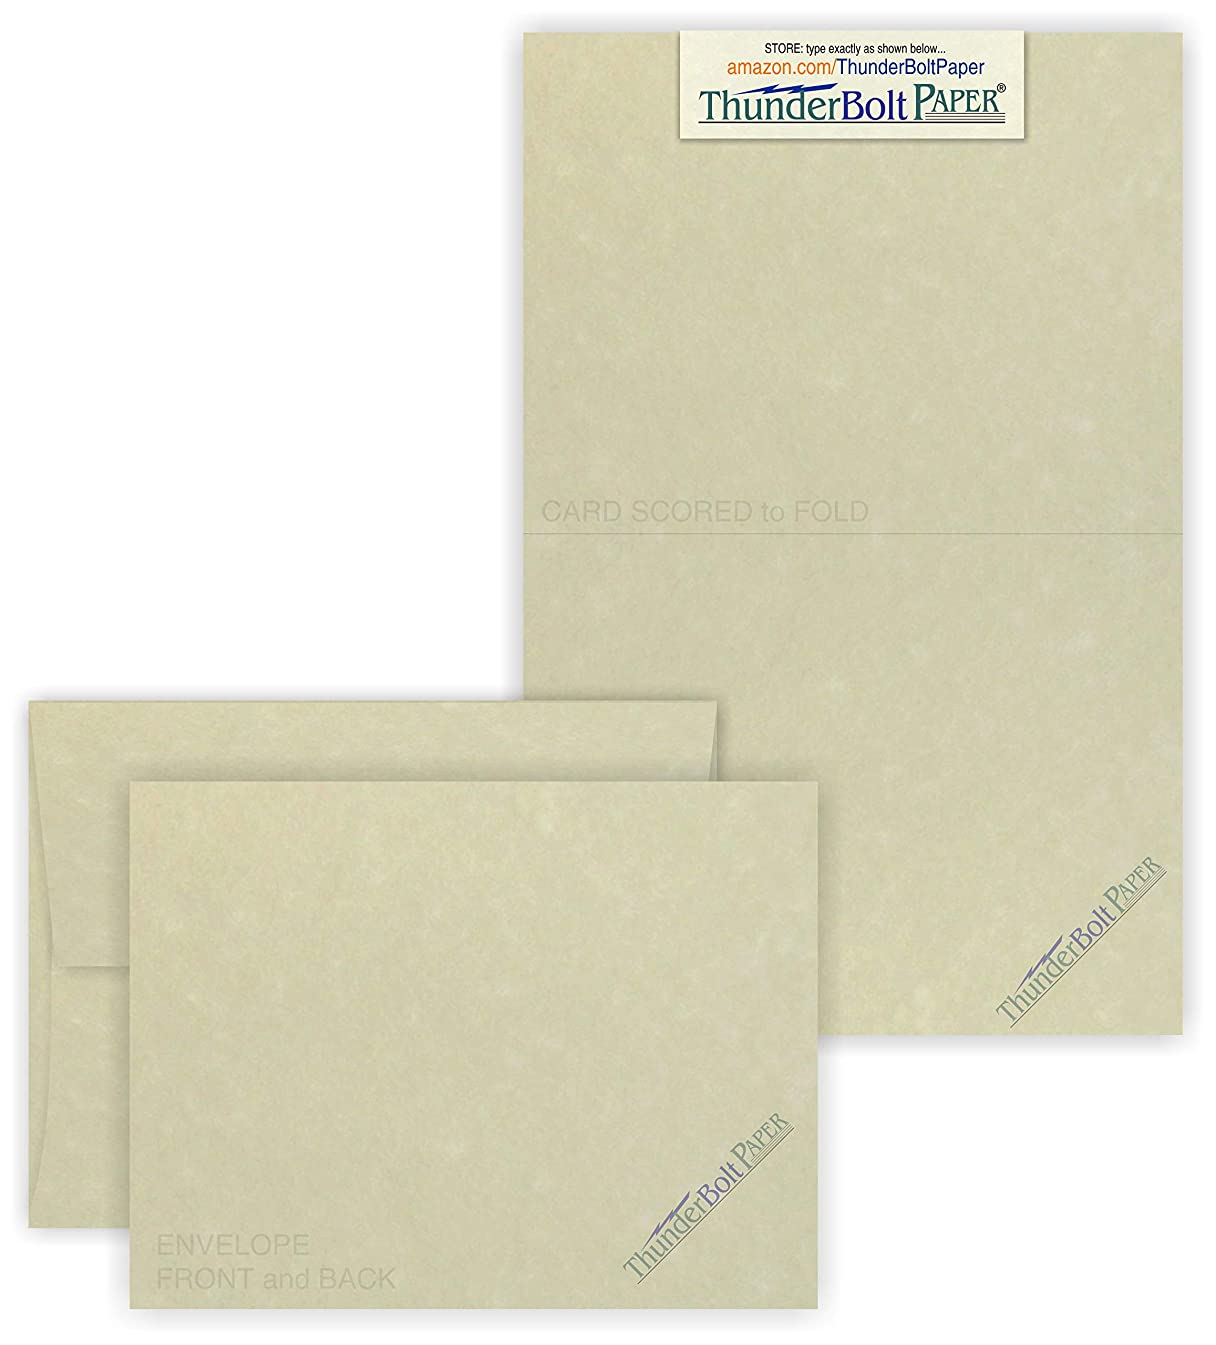 5X7 Folded Size with A-7 Envelopes - Natural Off White Parchment - 25 Sets (10X7 Cards Scored to Fold in Half) Matching Pack - Invitations, Greeting, Thank You, Notes, Holidays, Weddings, Birthdays,